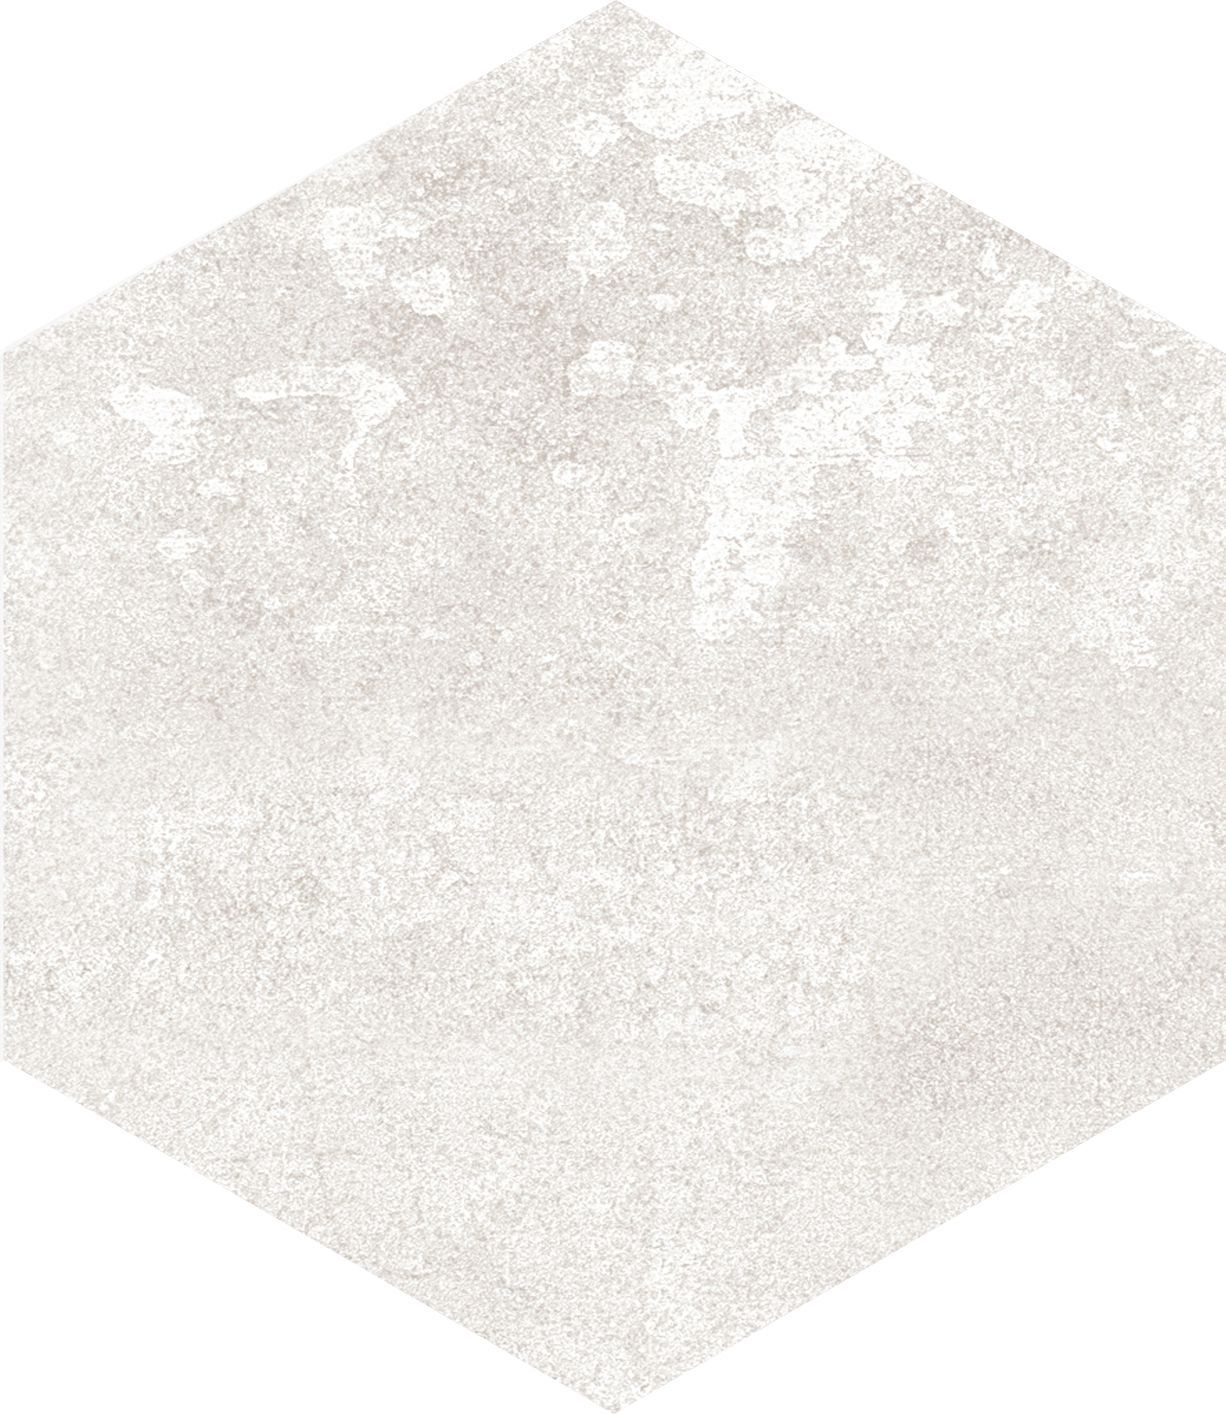 Urban White Concrete Effect Ceramic Wall Tile Pack Of 50 L 150mm W 173mm Departments Diy At B Q